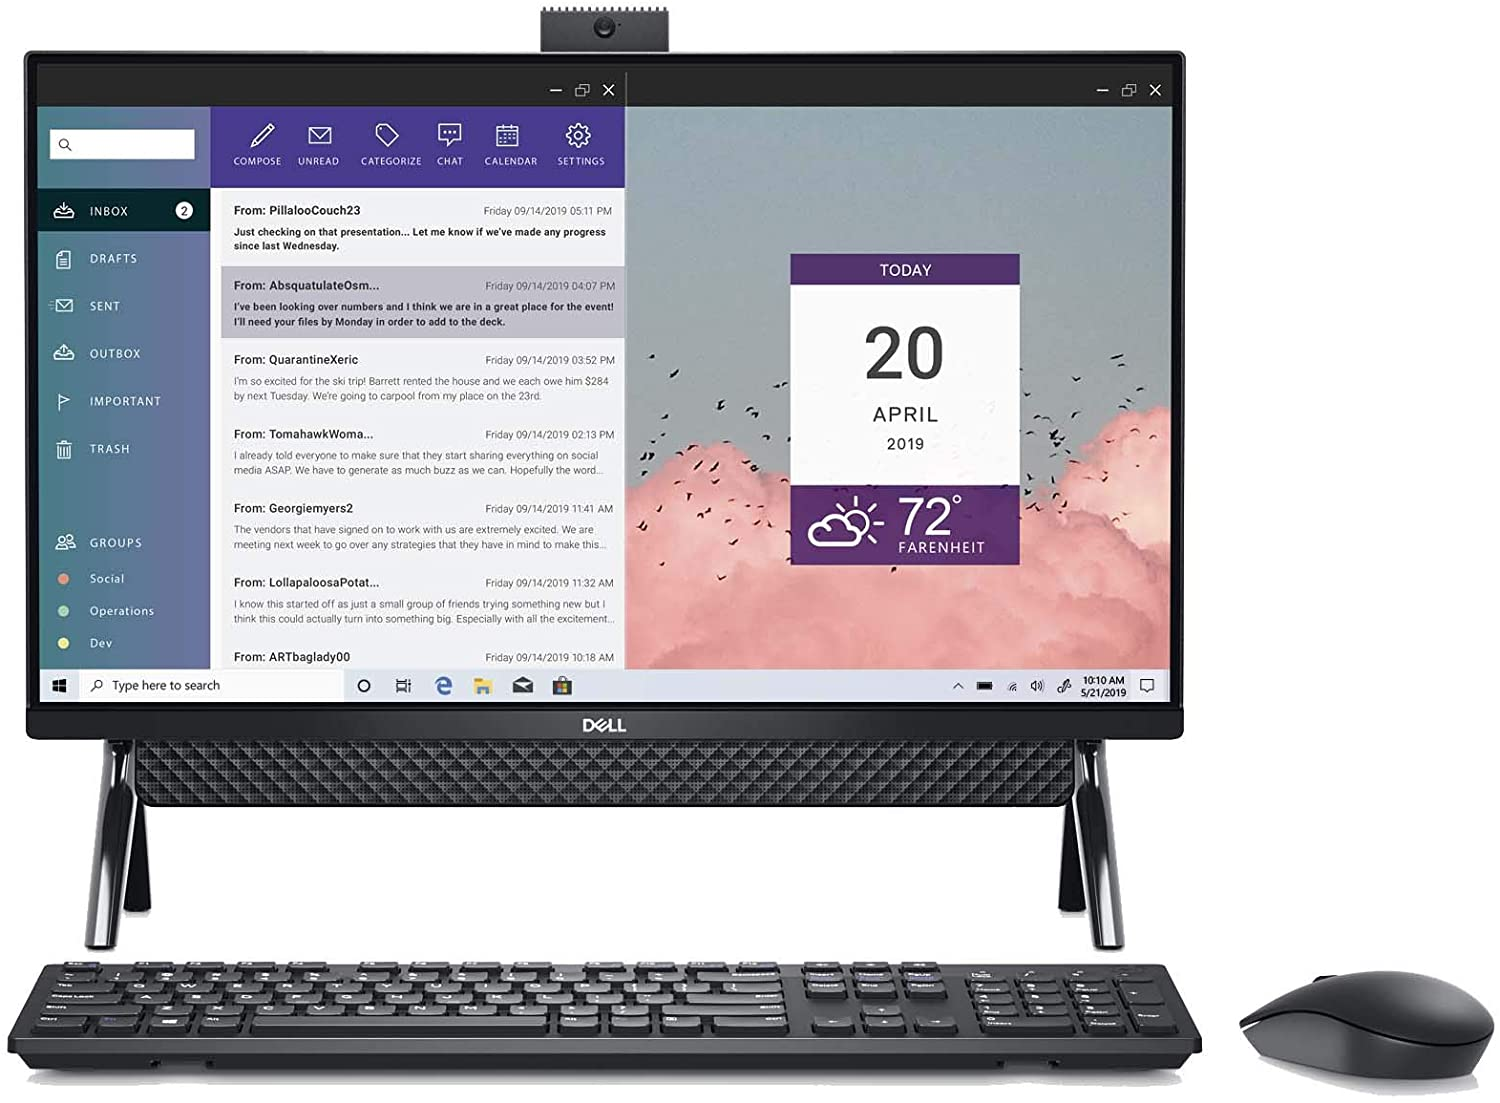 Dell Inspiron 5400 AIO 23.8 Inch FHD Touch All in One, Intel Core i3-1115G4, 8GB 2666MHz DDR4 RAM, 1TB SATA HDD, Intel UHD Graphics, Windows 10 Home (Latest Model)